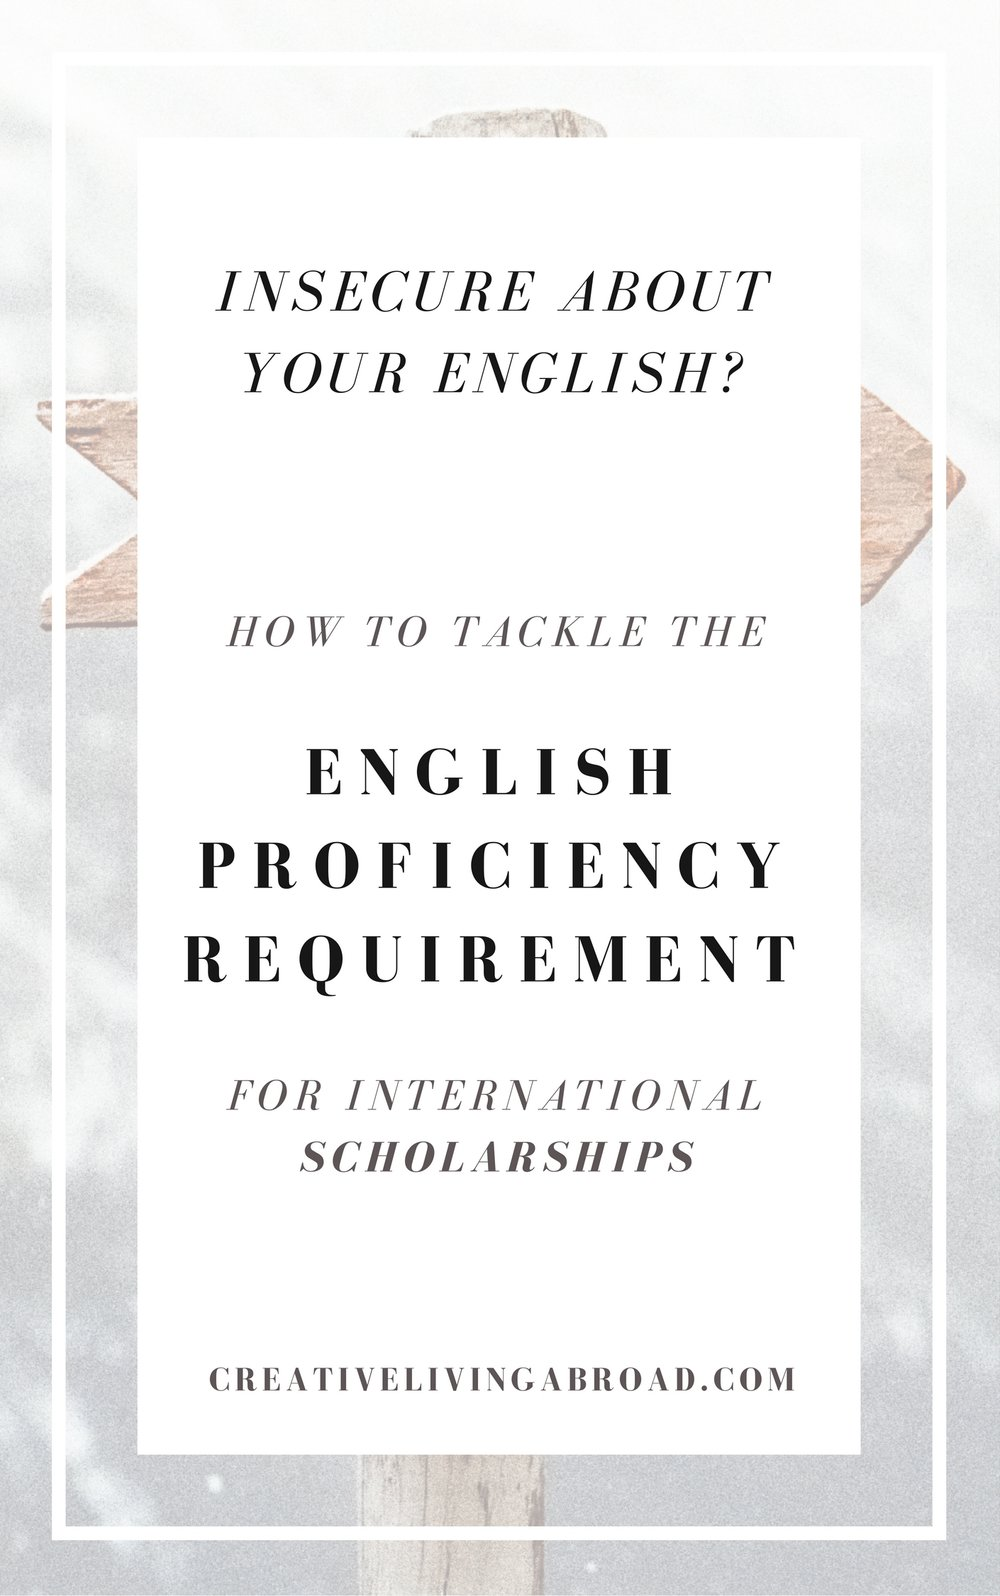 english requirement for international scholarships